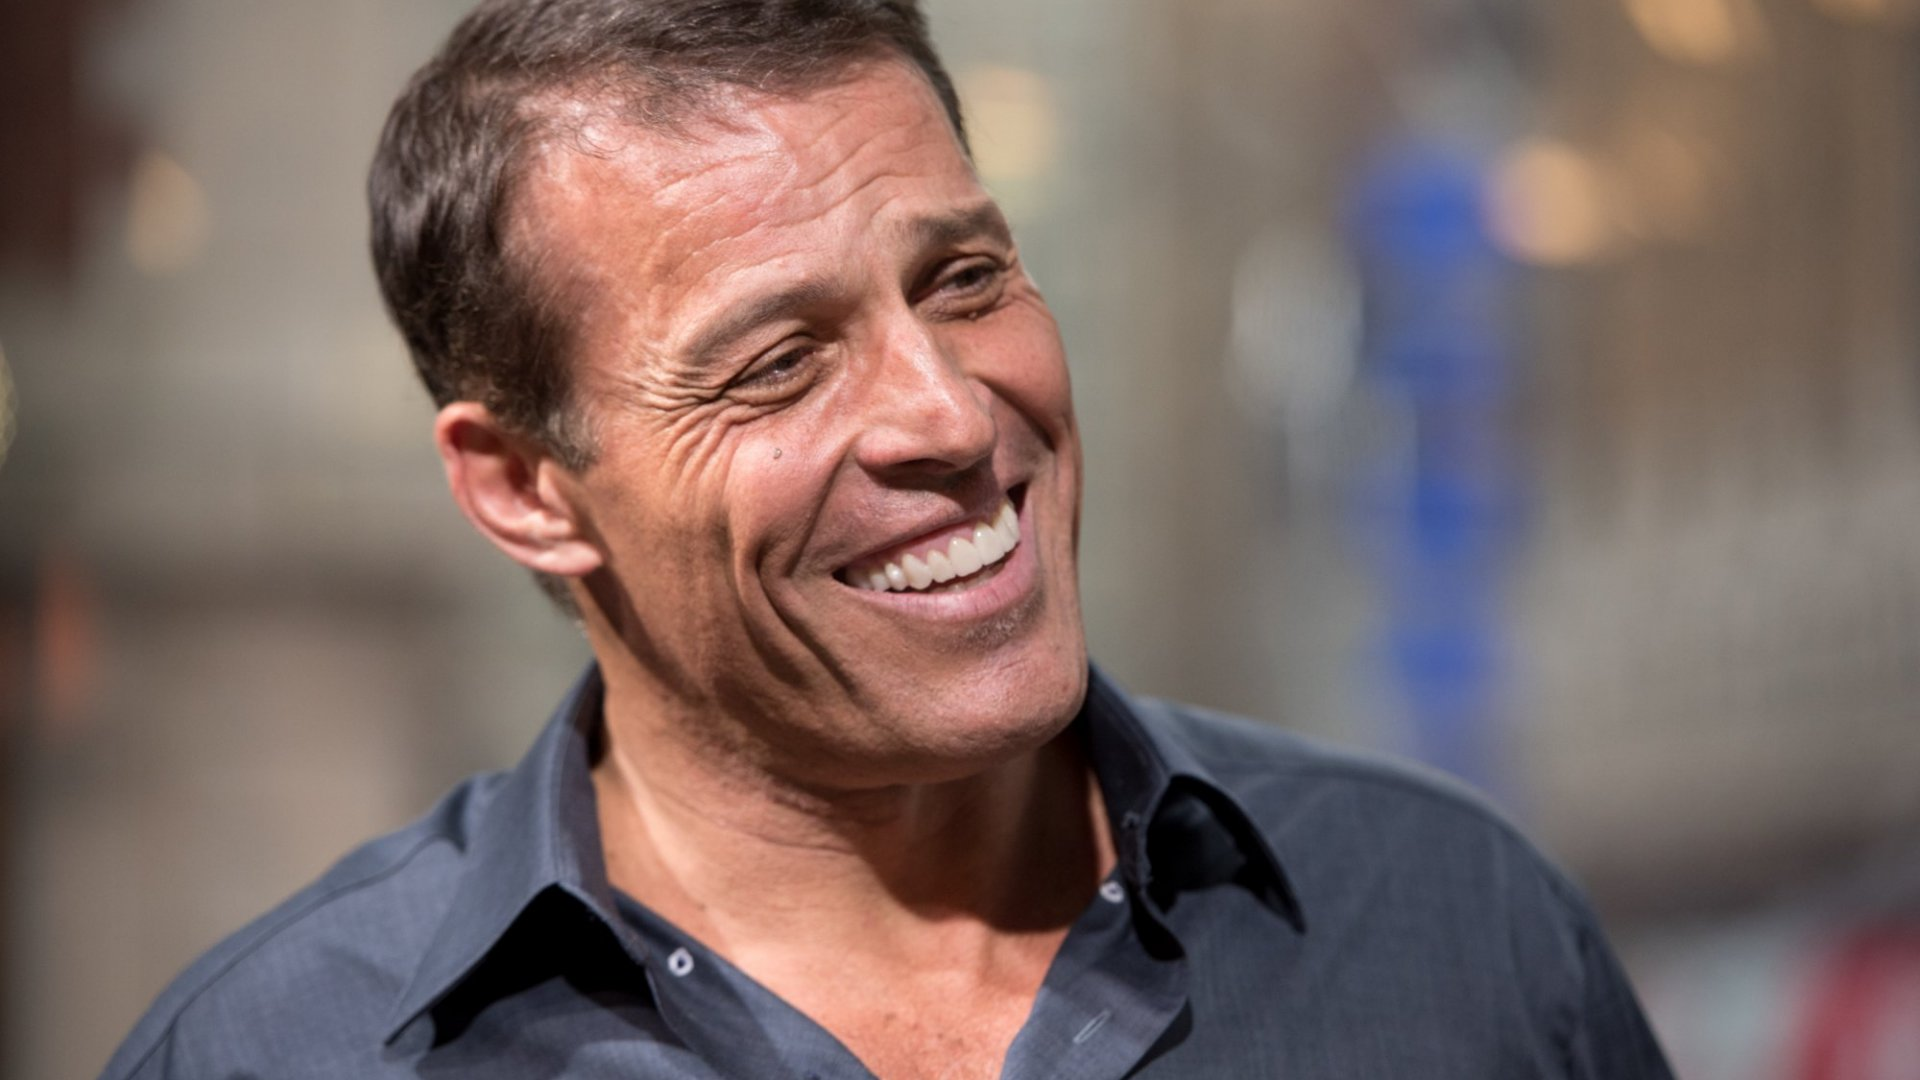 Tony Robbins: Success Without Fulfillment Is the Ultimate Failure